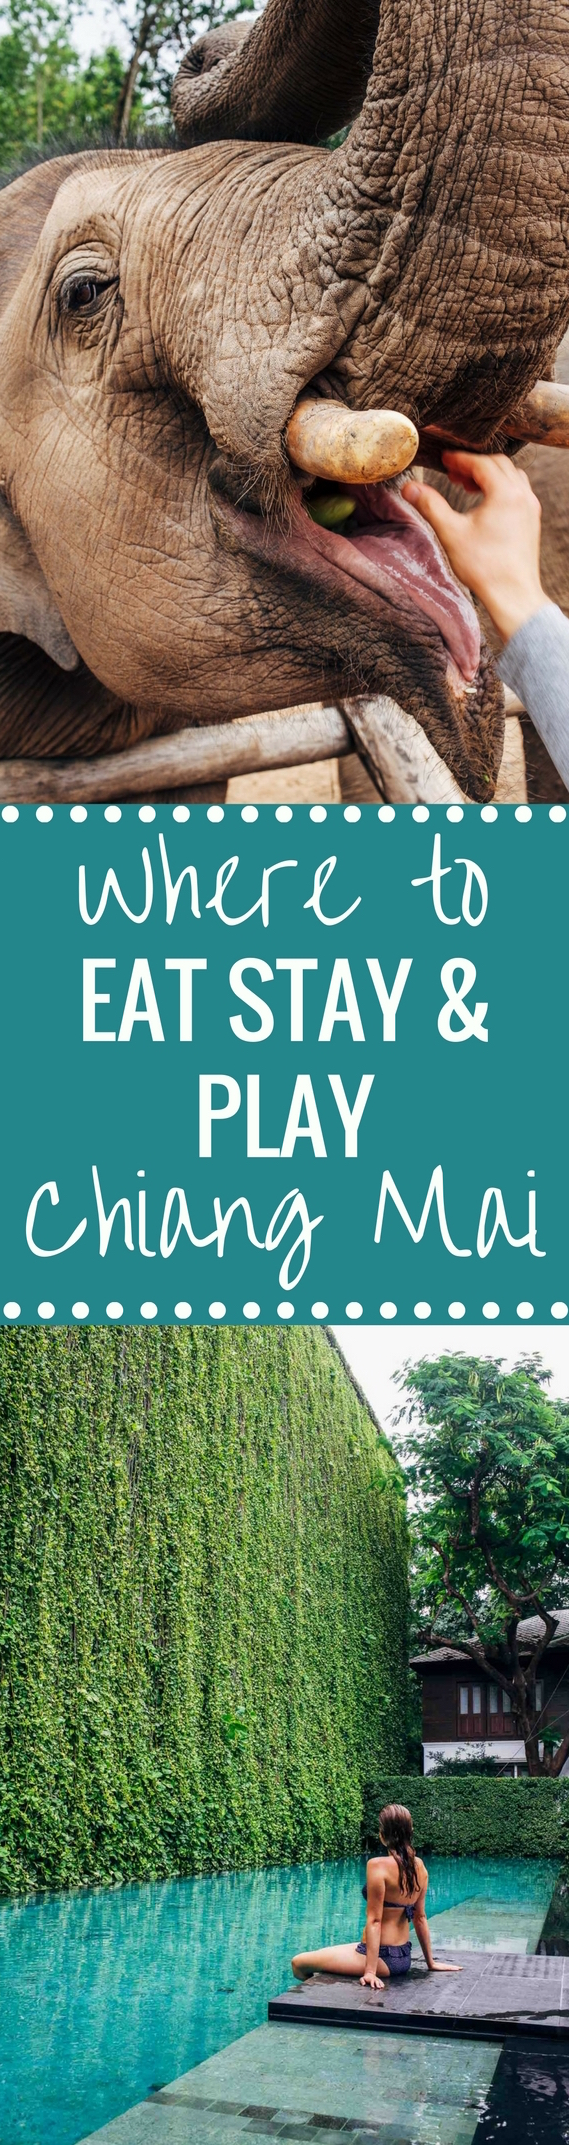 Travel Guide for Where to Eat, Stay & Play in Chiang Mai, Thailand